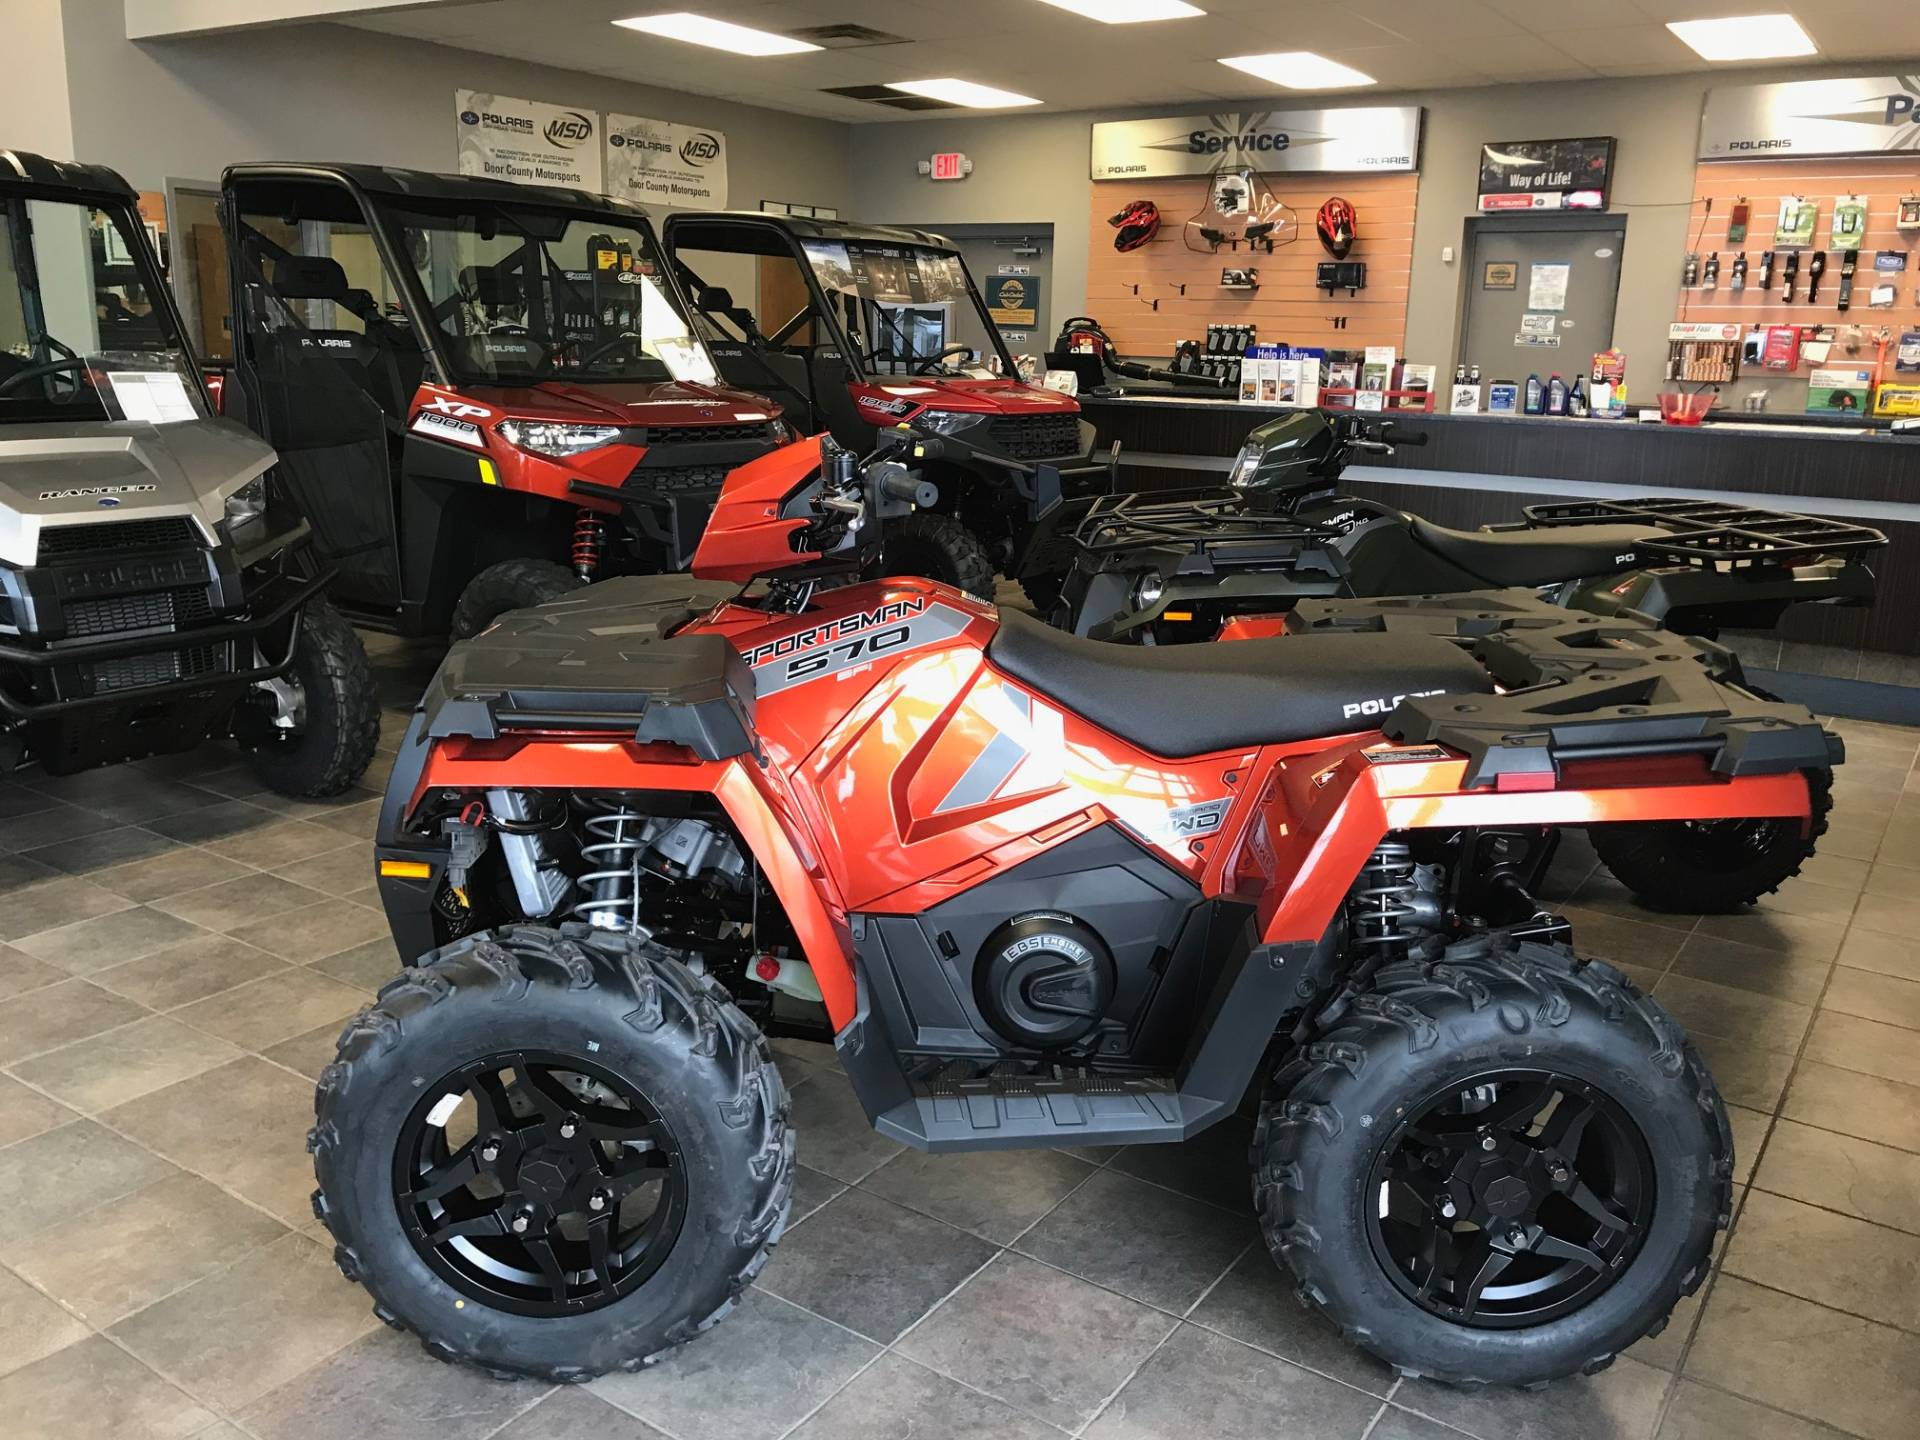 2020 Polaris Sportsman 570 Premium in Sturgeon Bay, Wisconsin - Photo 1